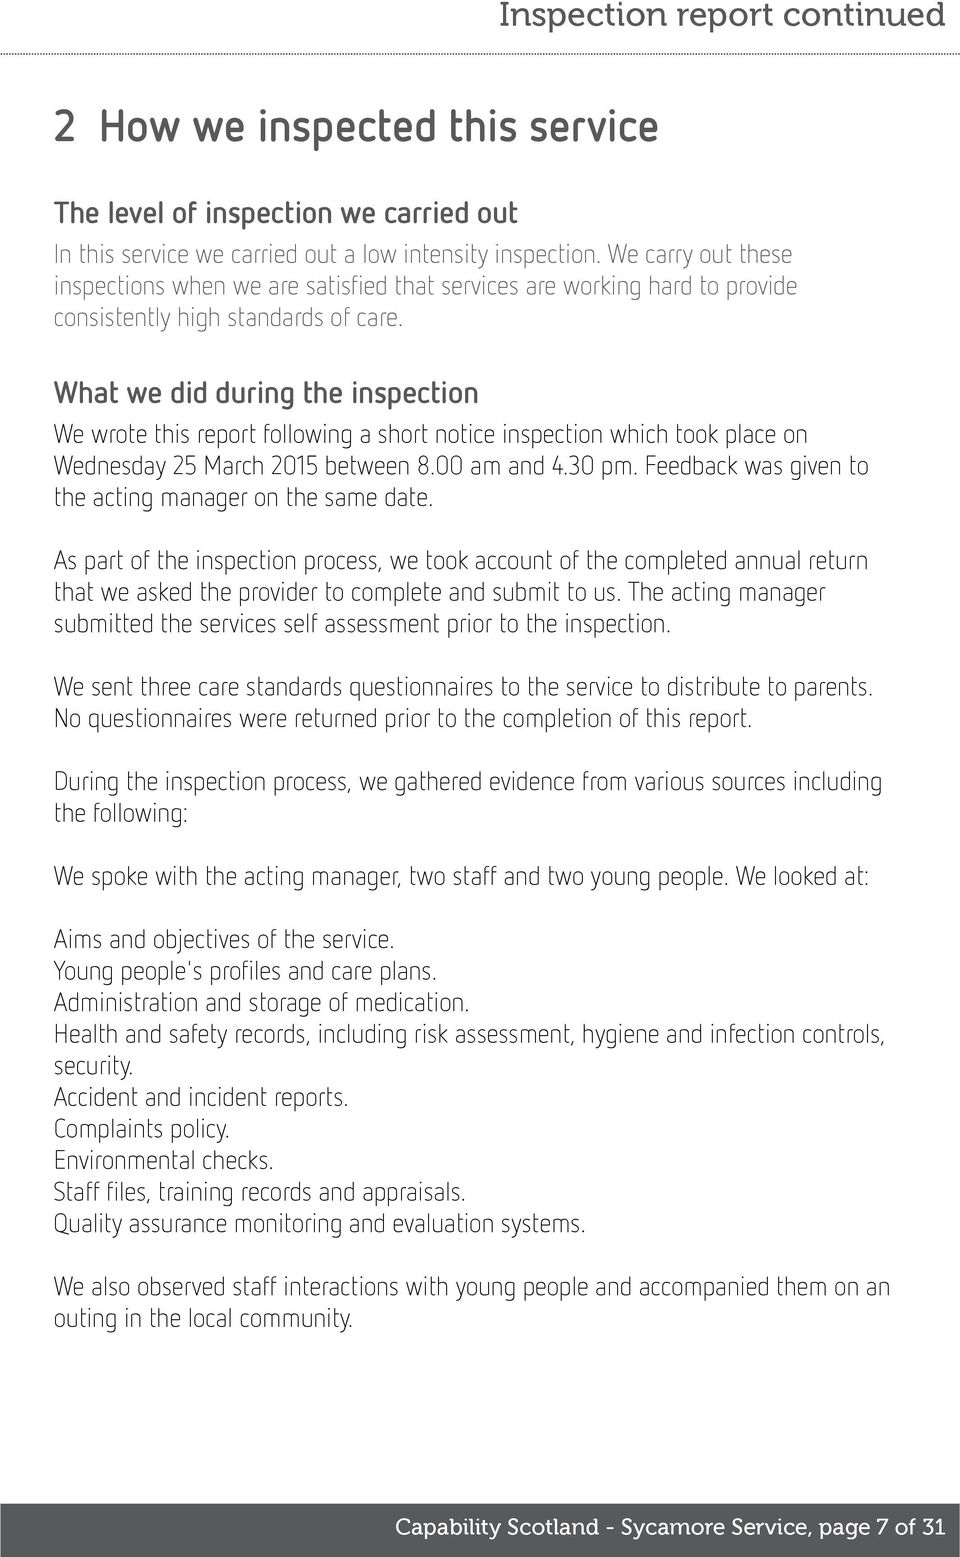 What we did during the inspection We wrote this report following a short notice inspection which took place on Wednesday 25 March 2015 between 8.00 am and 4.30 pm.